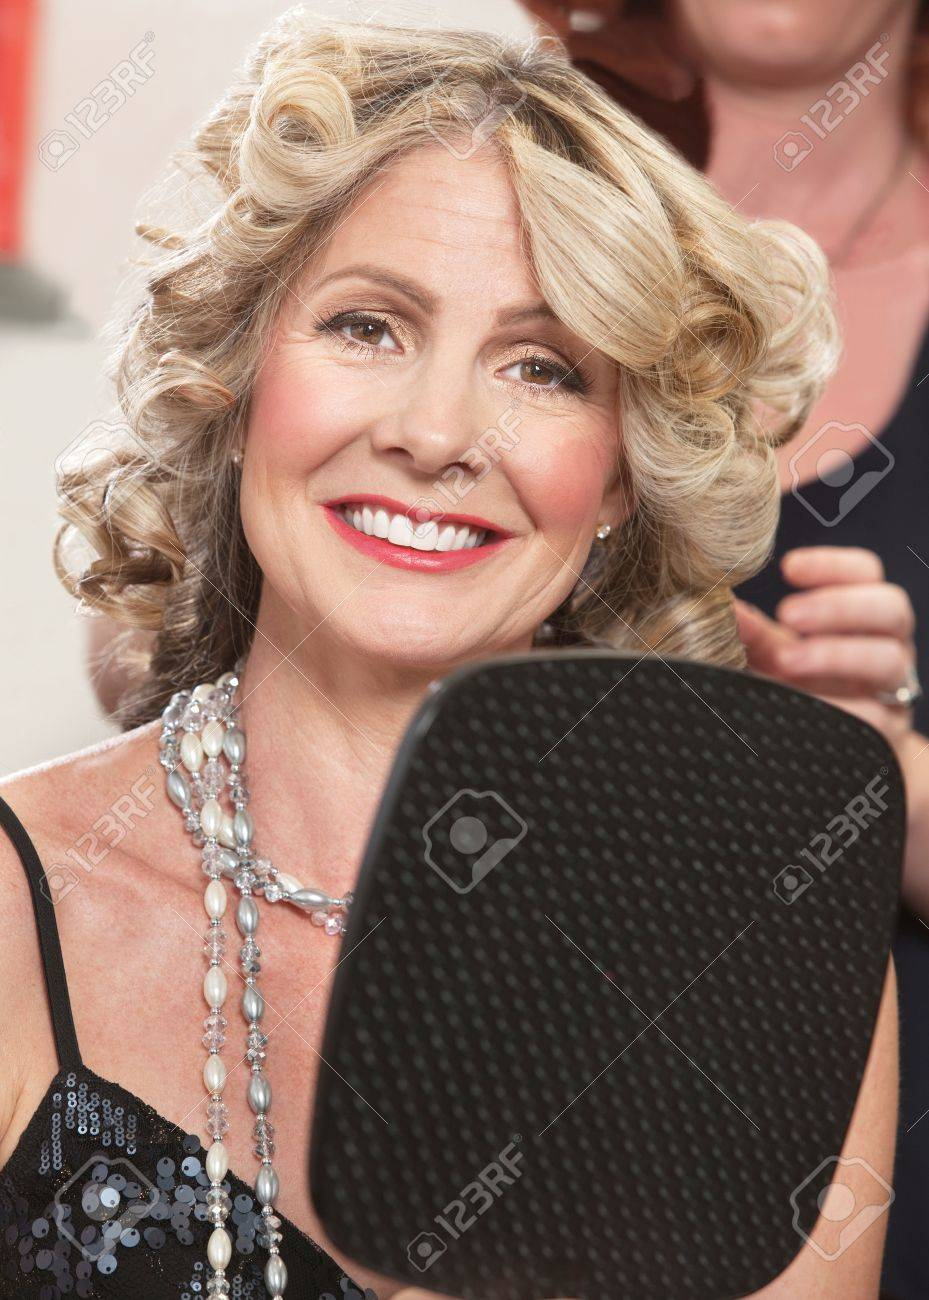 Attractive Middle Aged Female With Mirror In Hair Salon Stock Photo